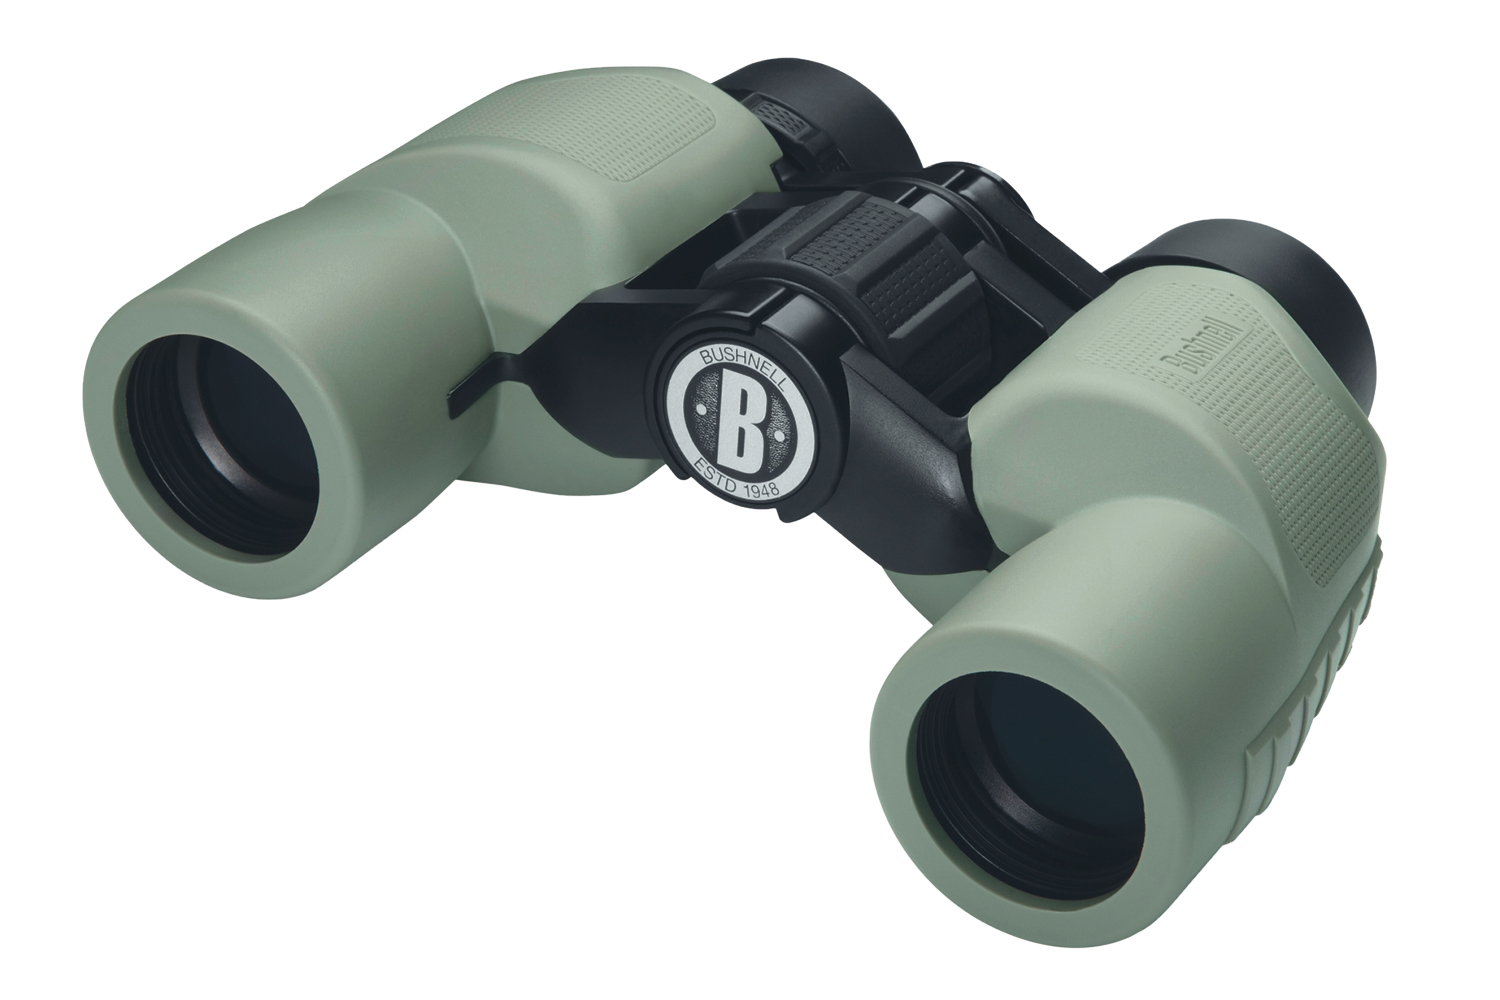 Бинокль Bushnell NatureView 6x30 бинокль bushnell powerview roof 8–16x40